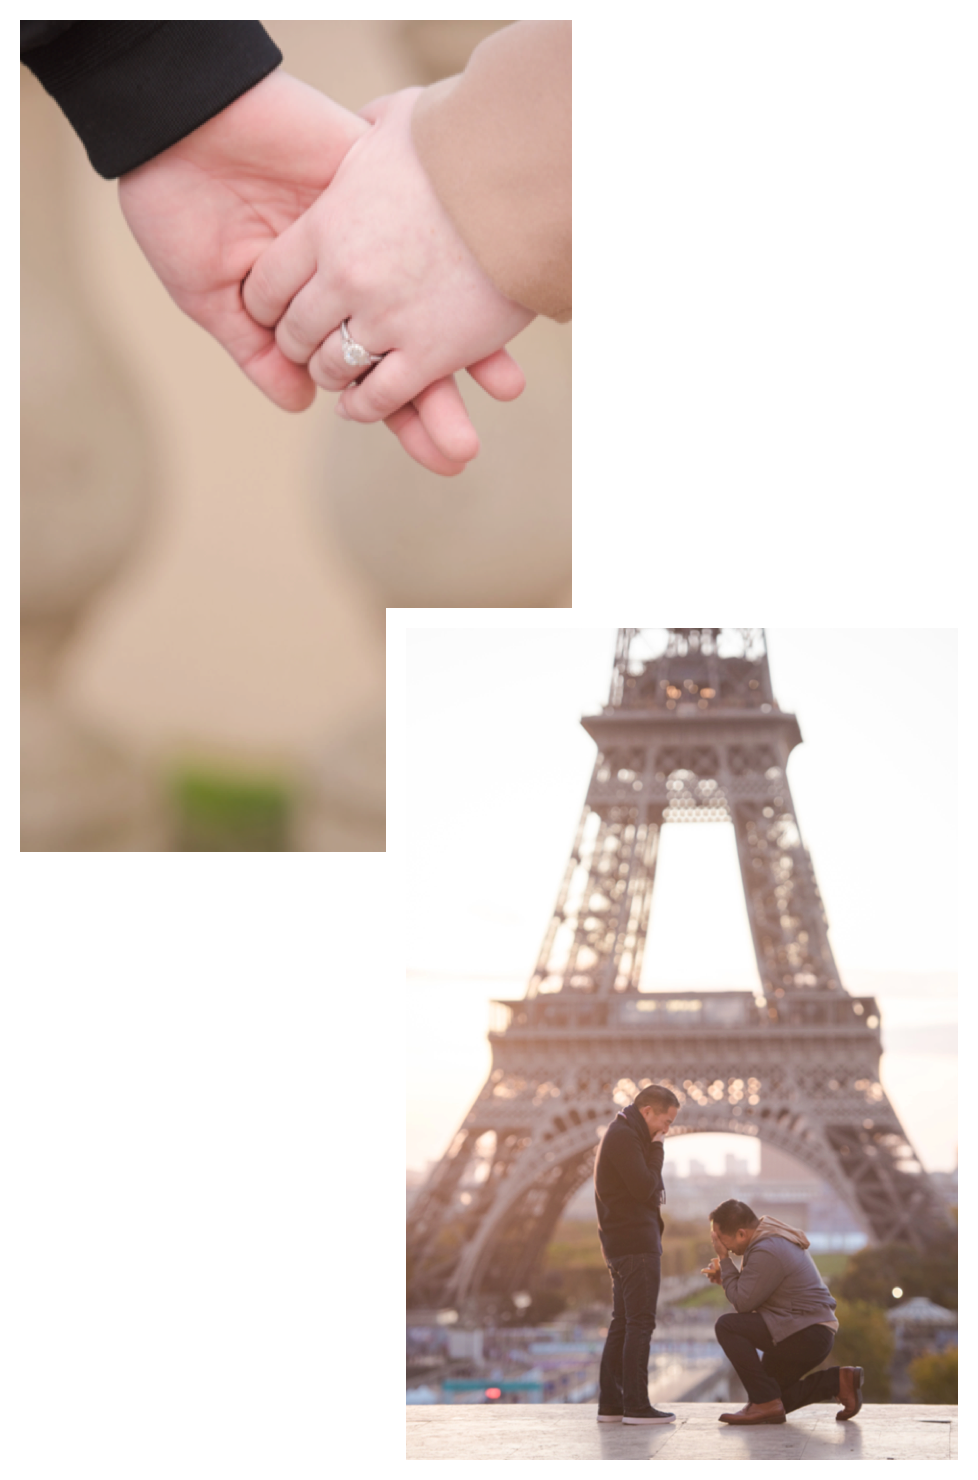 Paris Proposal Photos - How It Works